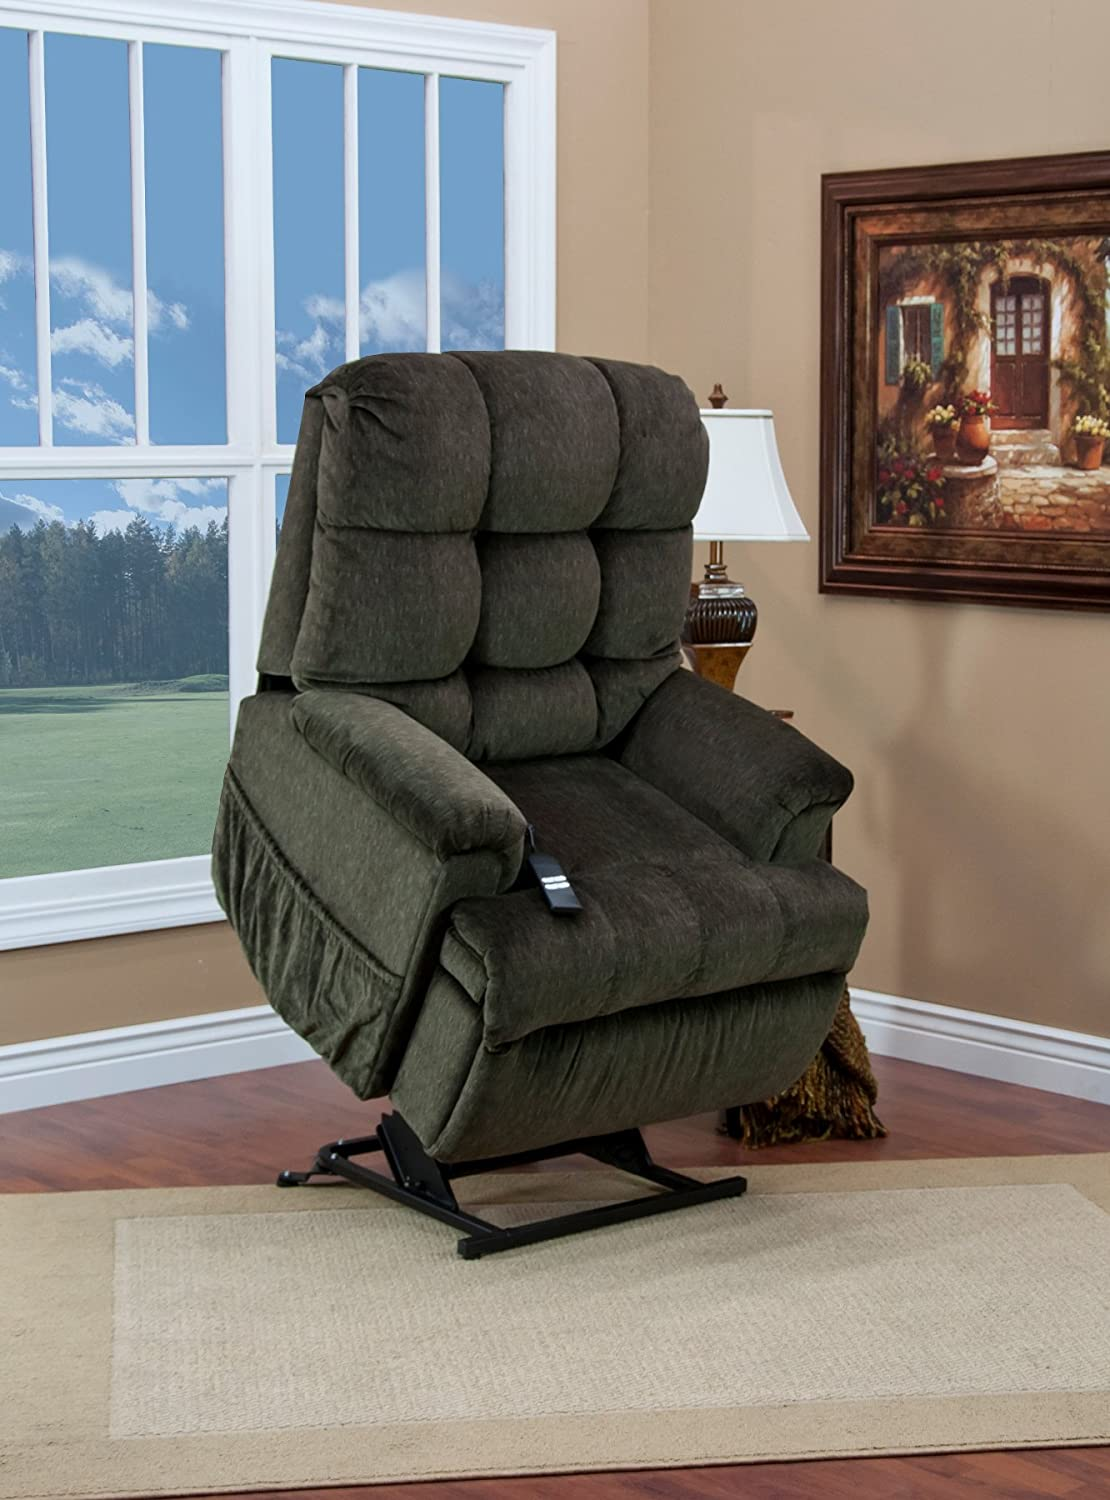 Amazon.com: Med Lift 5555 Series Petite Sleeper/Reclining Lift Chair Cabo  Godiva, 5555P CAG, 5555P CAG, 5555PCAG: Health U0026 Personal Care